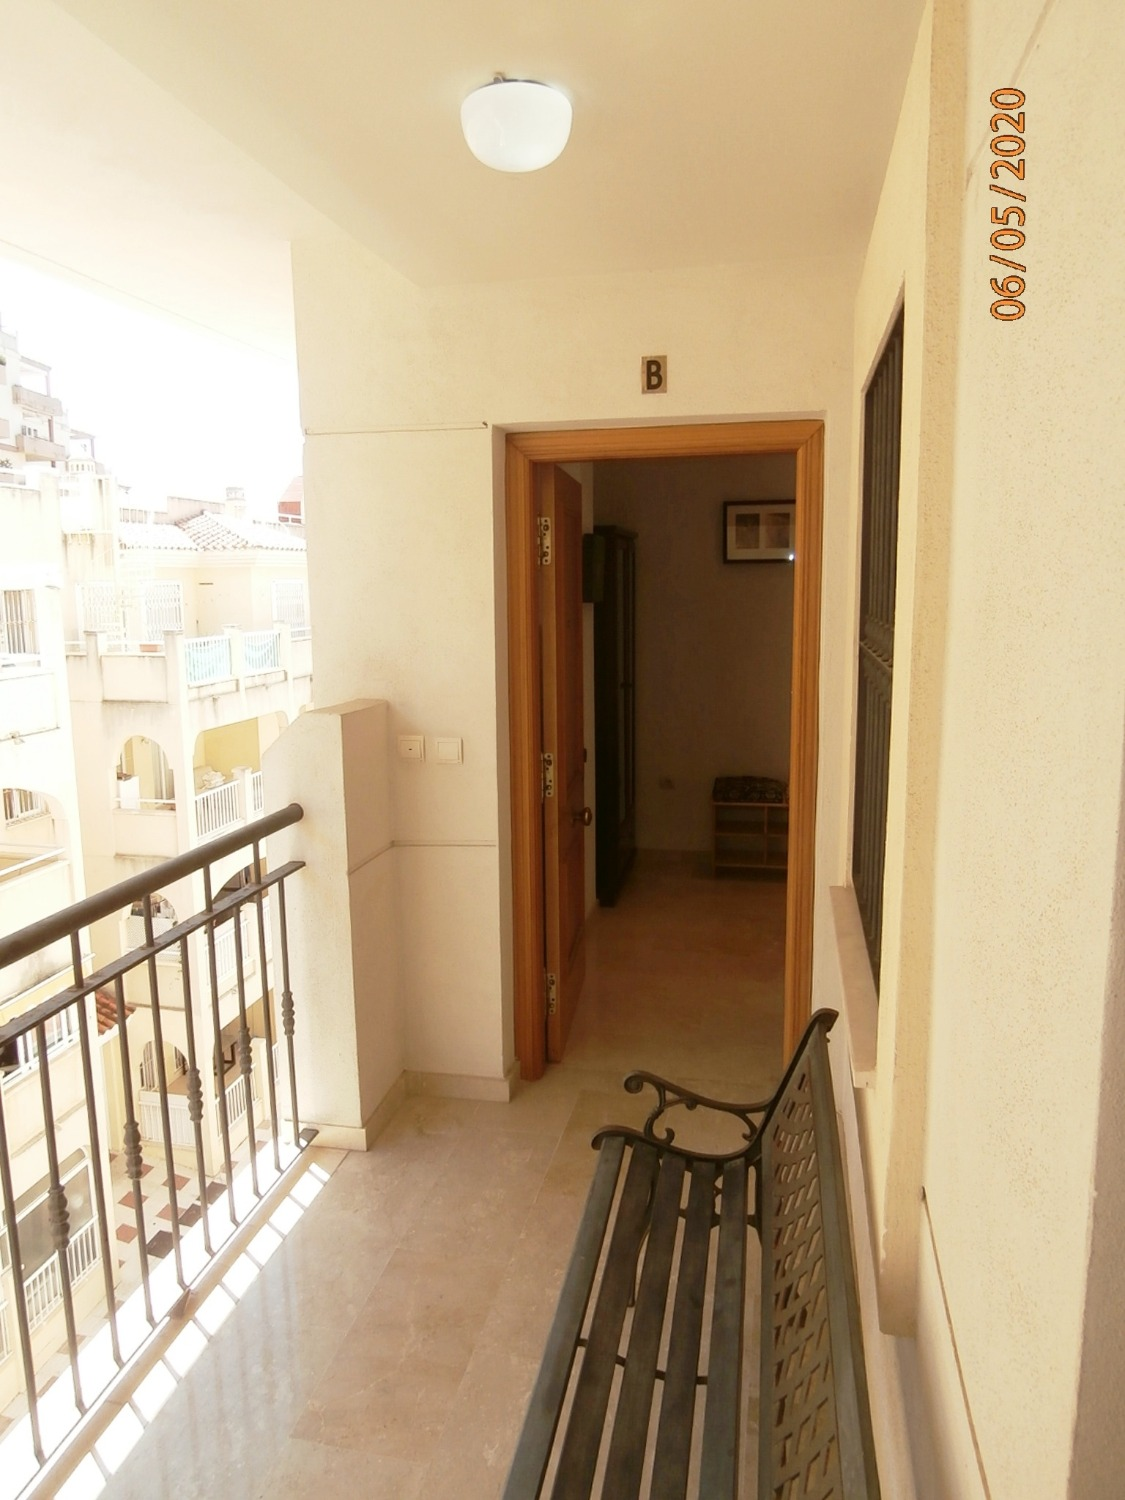 Excellent duplex penthouse, SUPERREDUCED for quick sale.